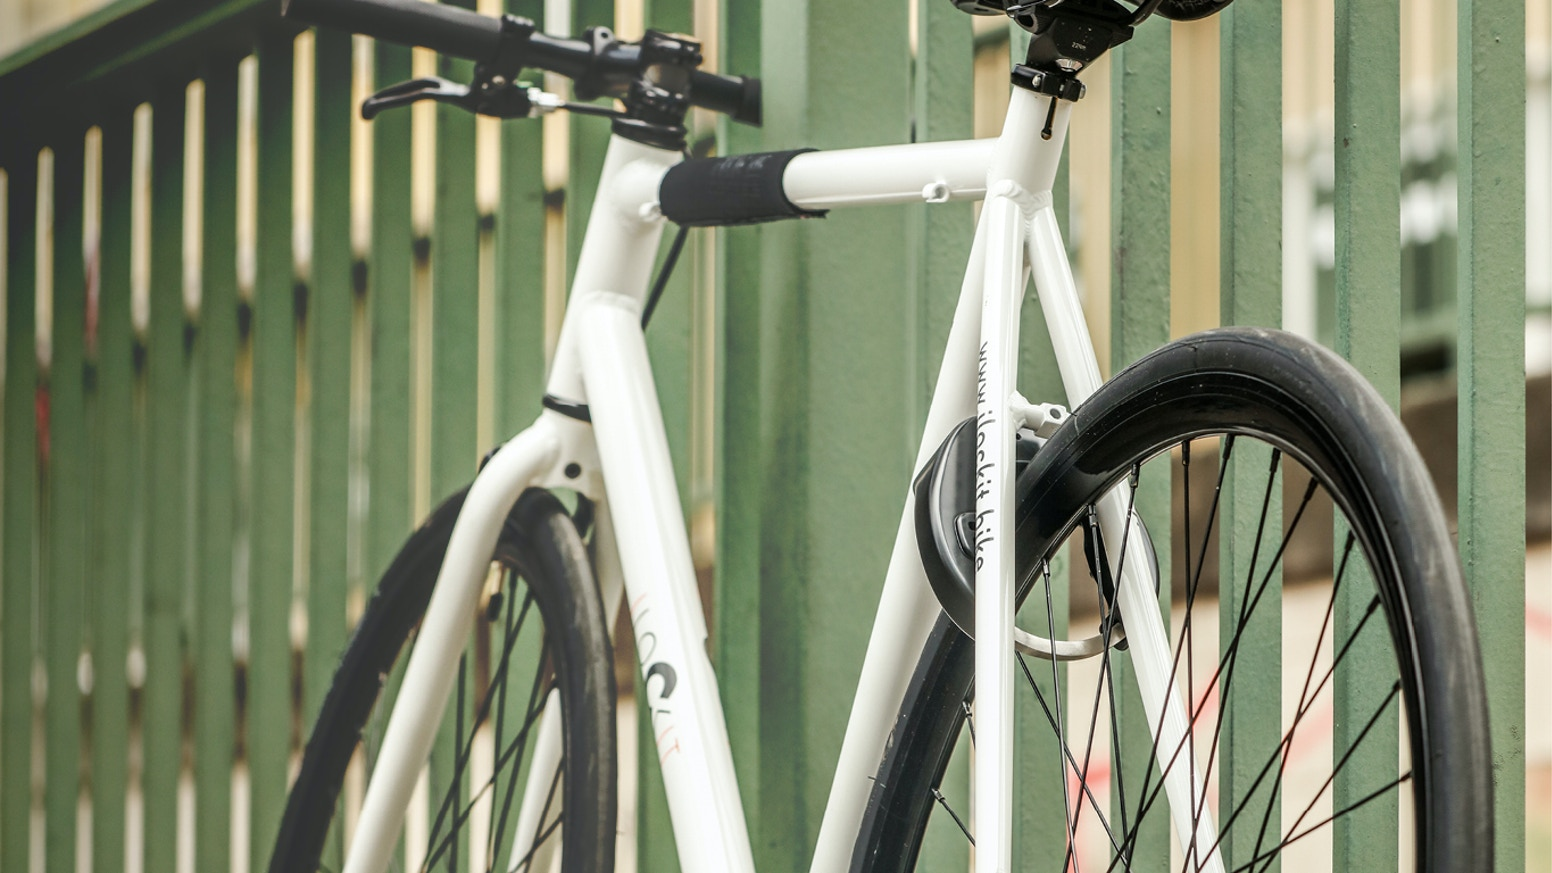 I LOCK IT is a fully automatic smart bike lock that combines security with comfort. With I LOCK IT your bike will always be secured.